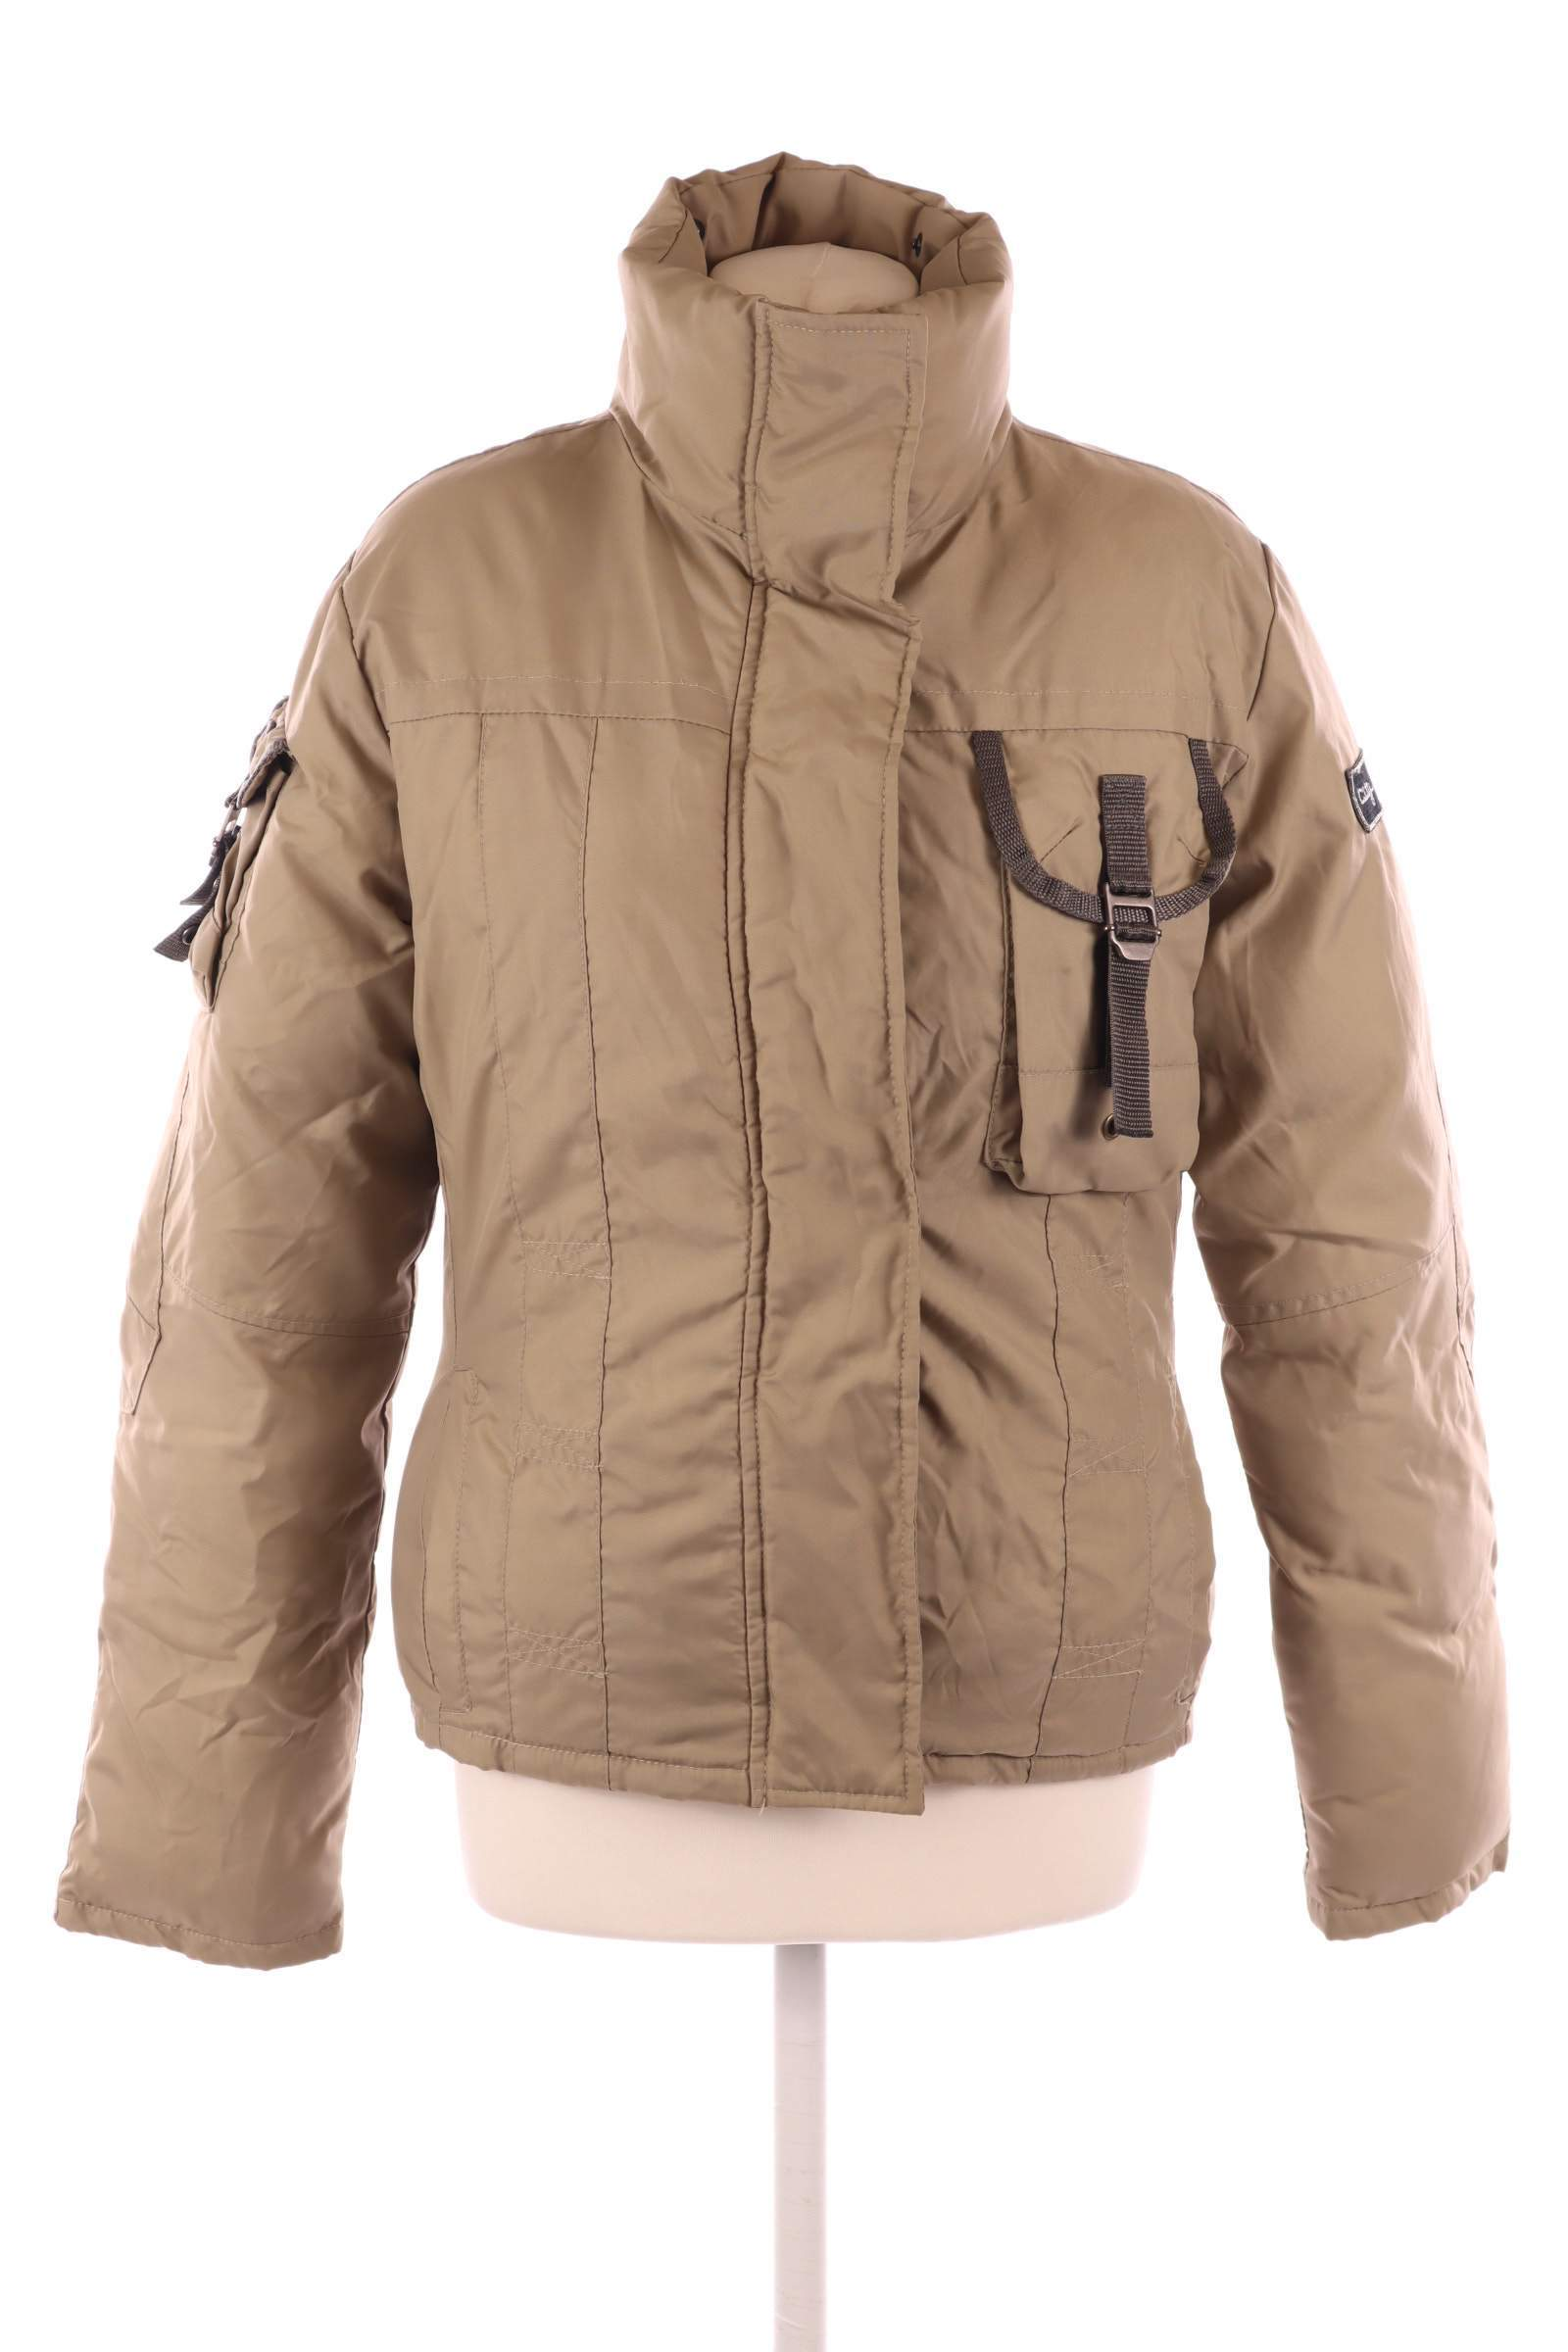 City Life Beige Coat - upty.store